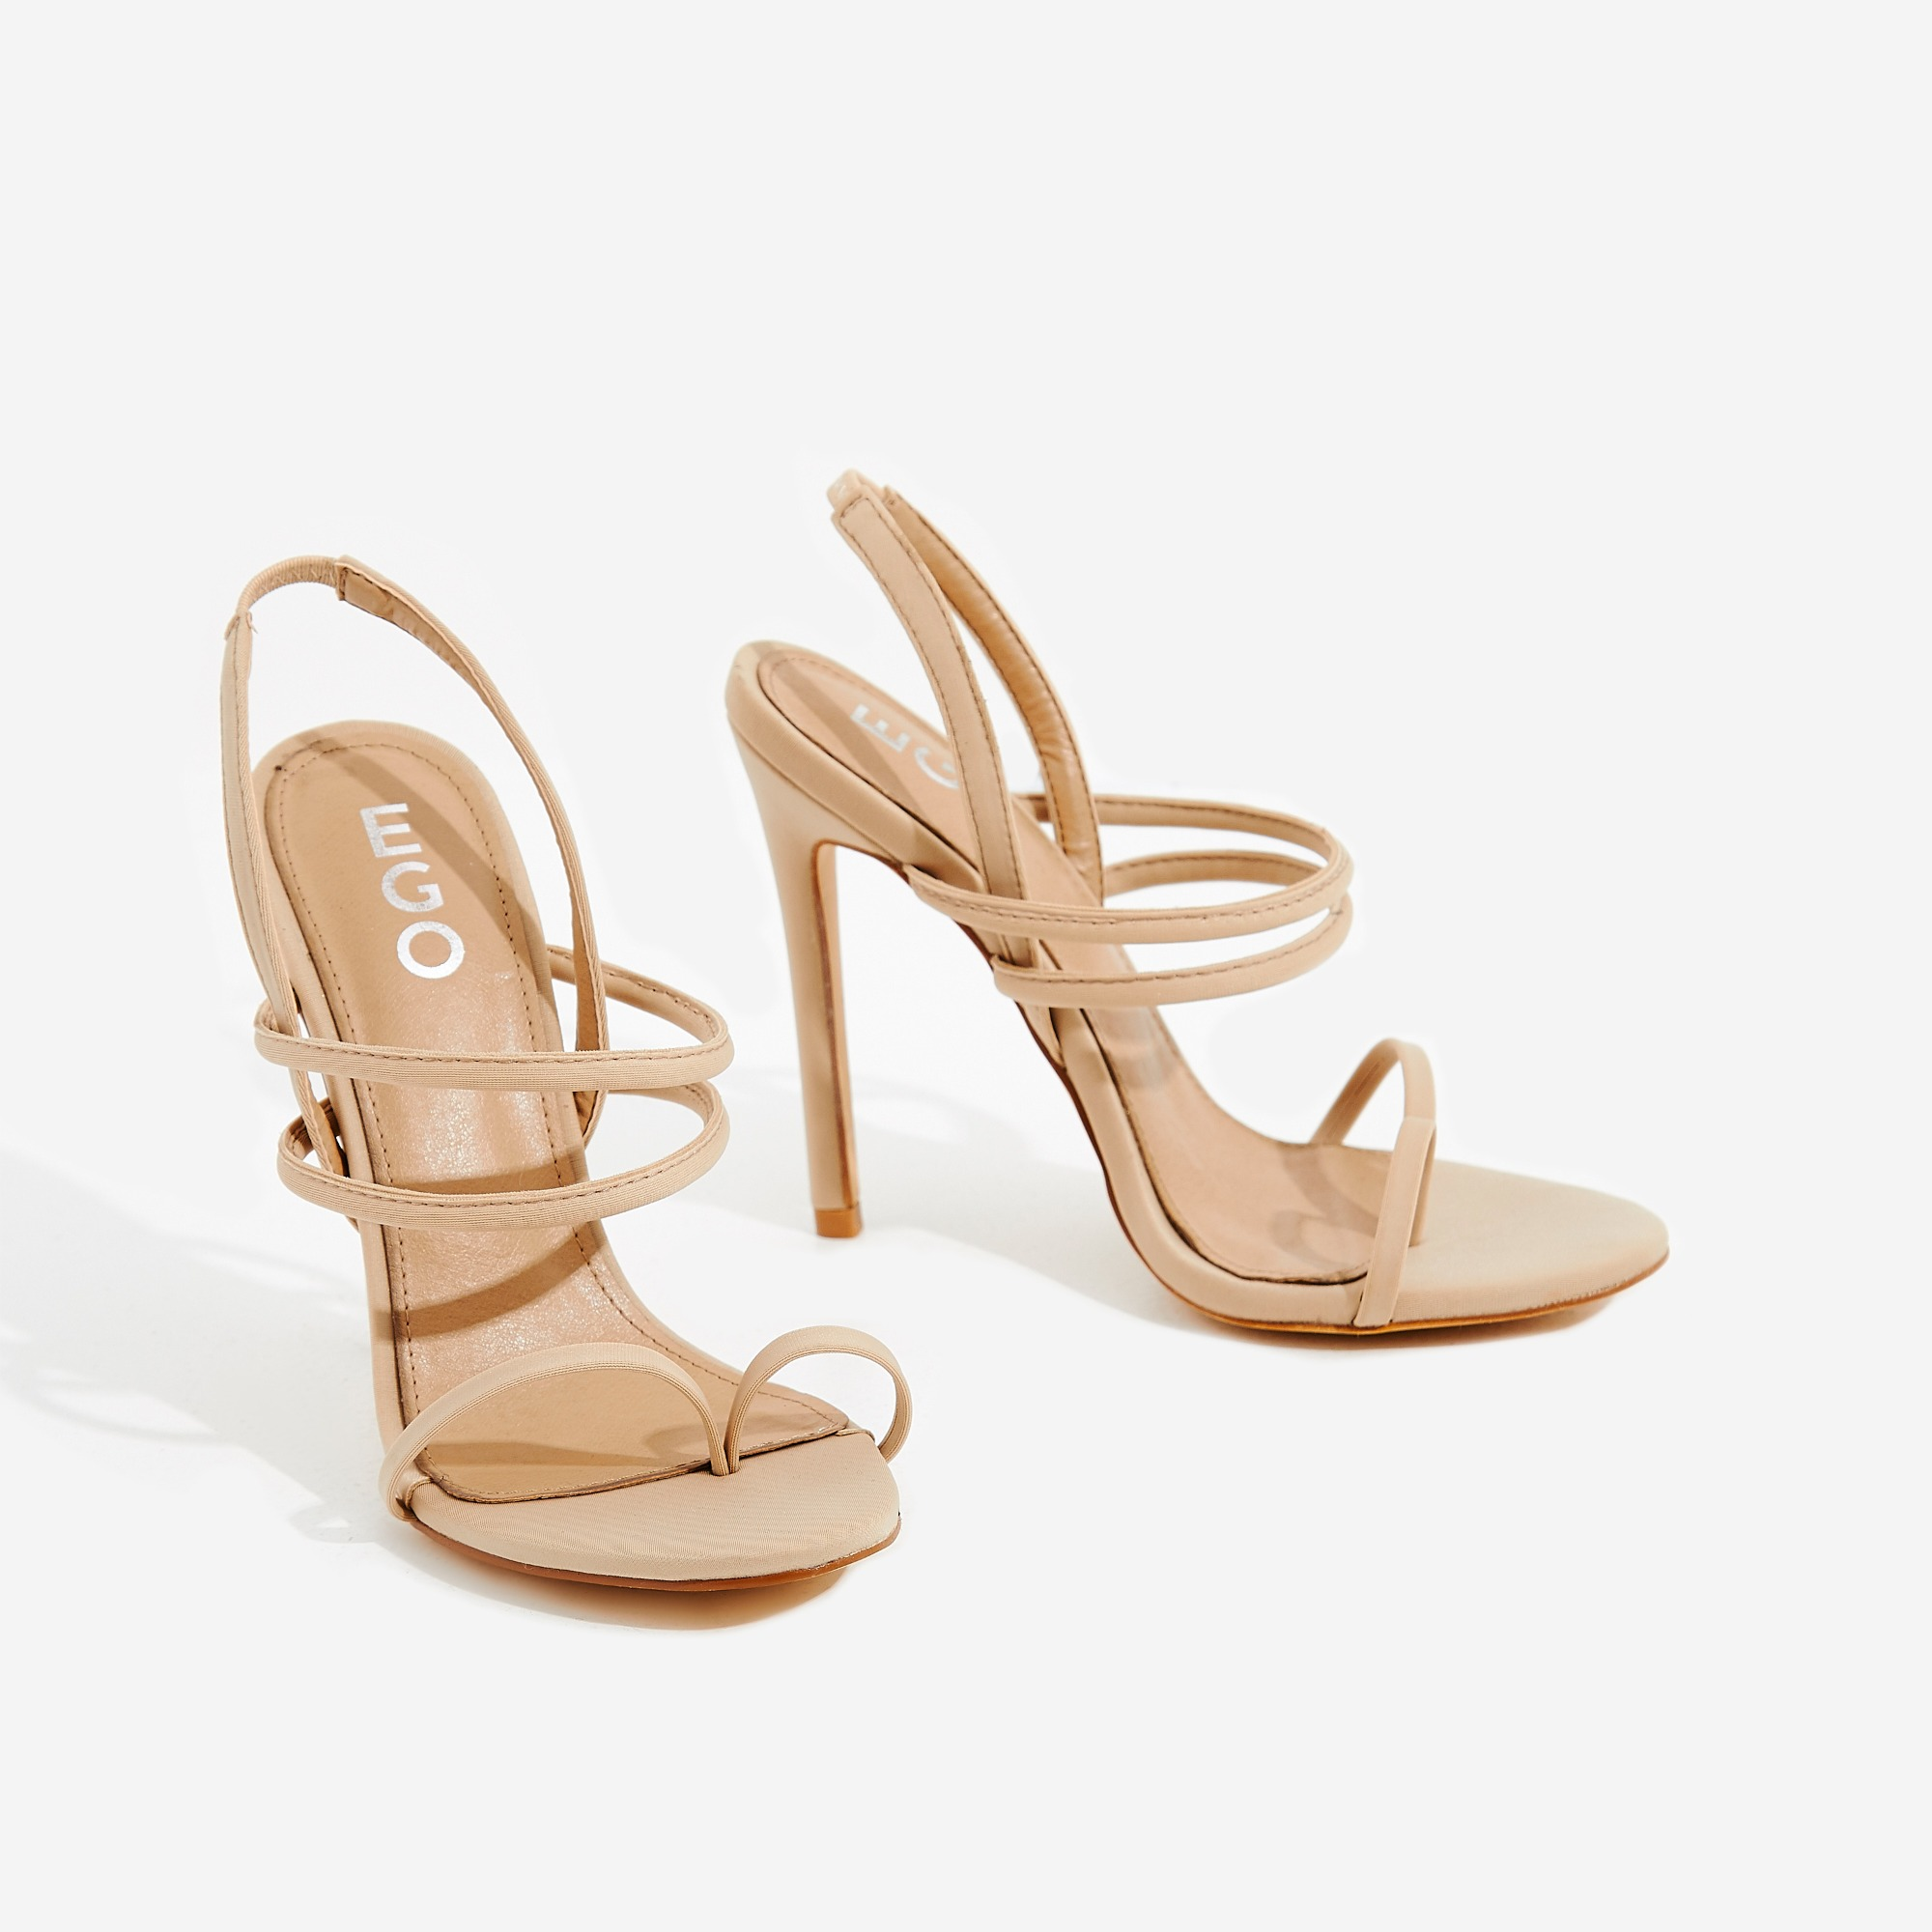 Rhia Strappy Toe Post Heel In Nude Lycra